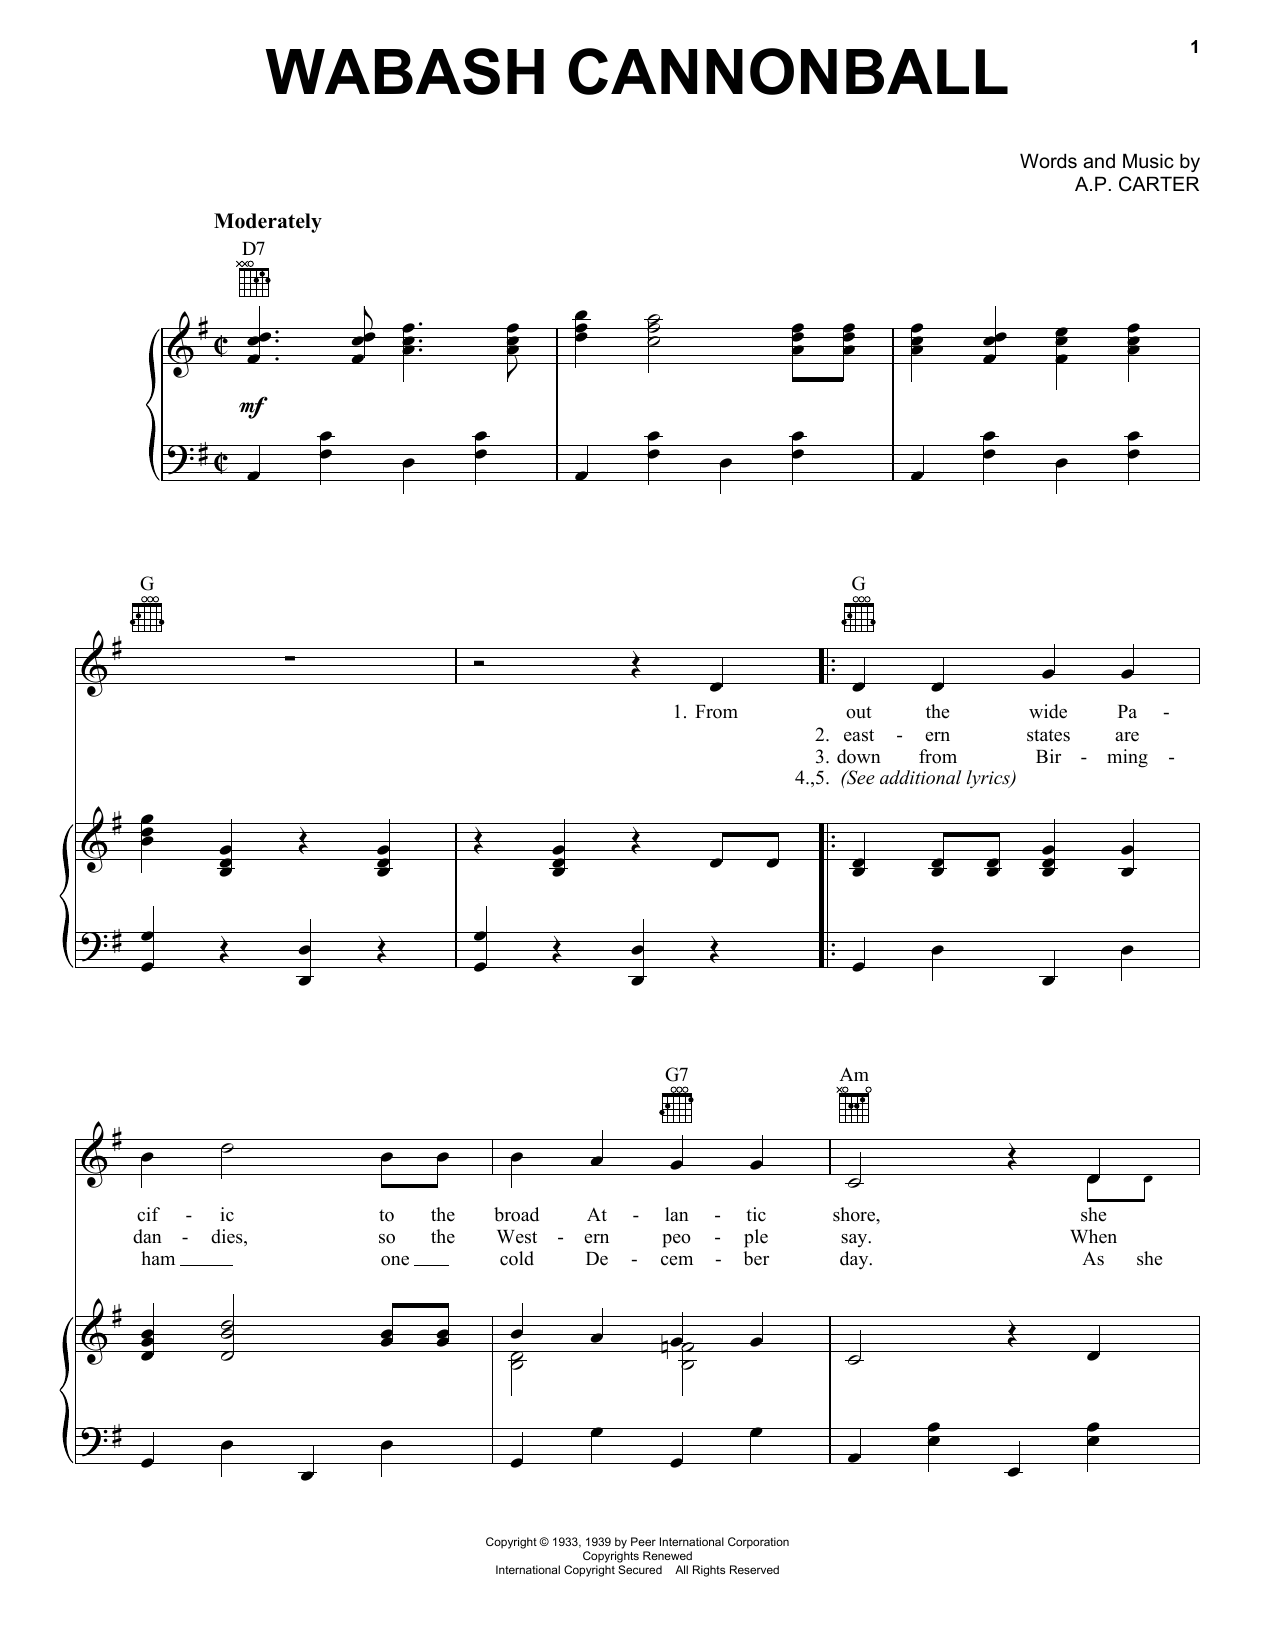 Roy Acuff Wabash Cannonball sheet music notes and chords